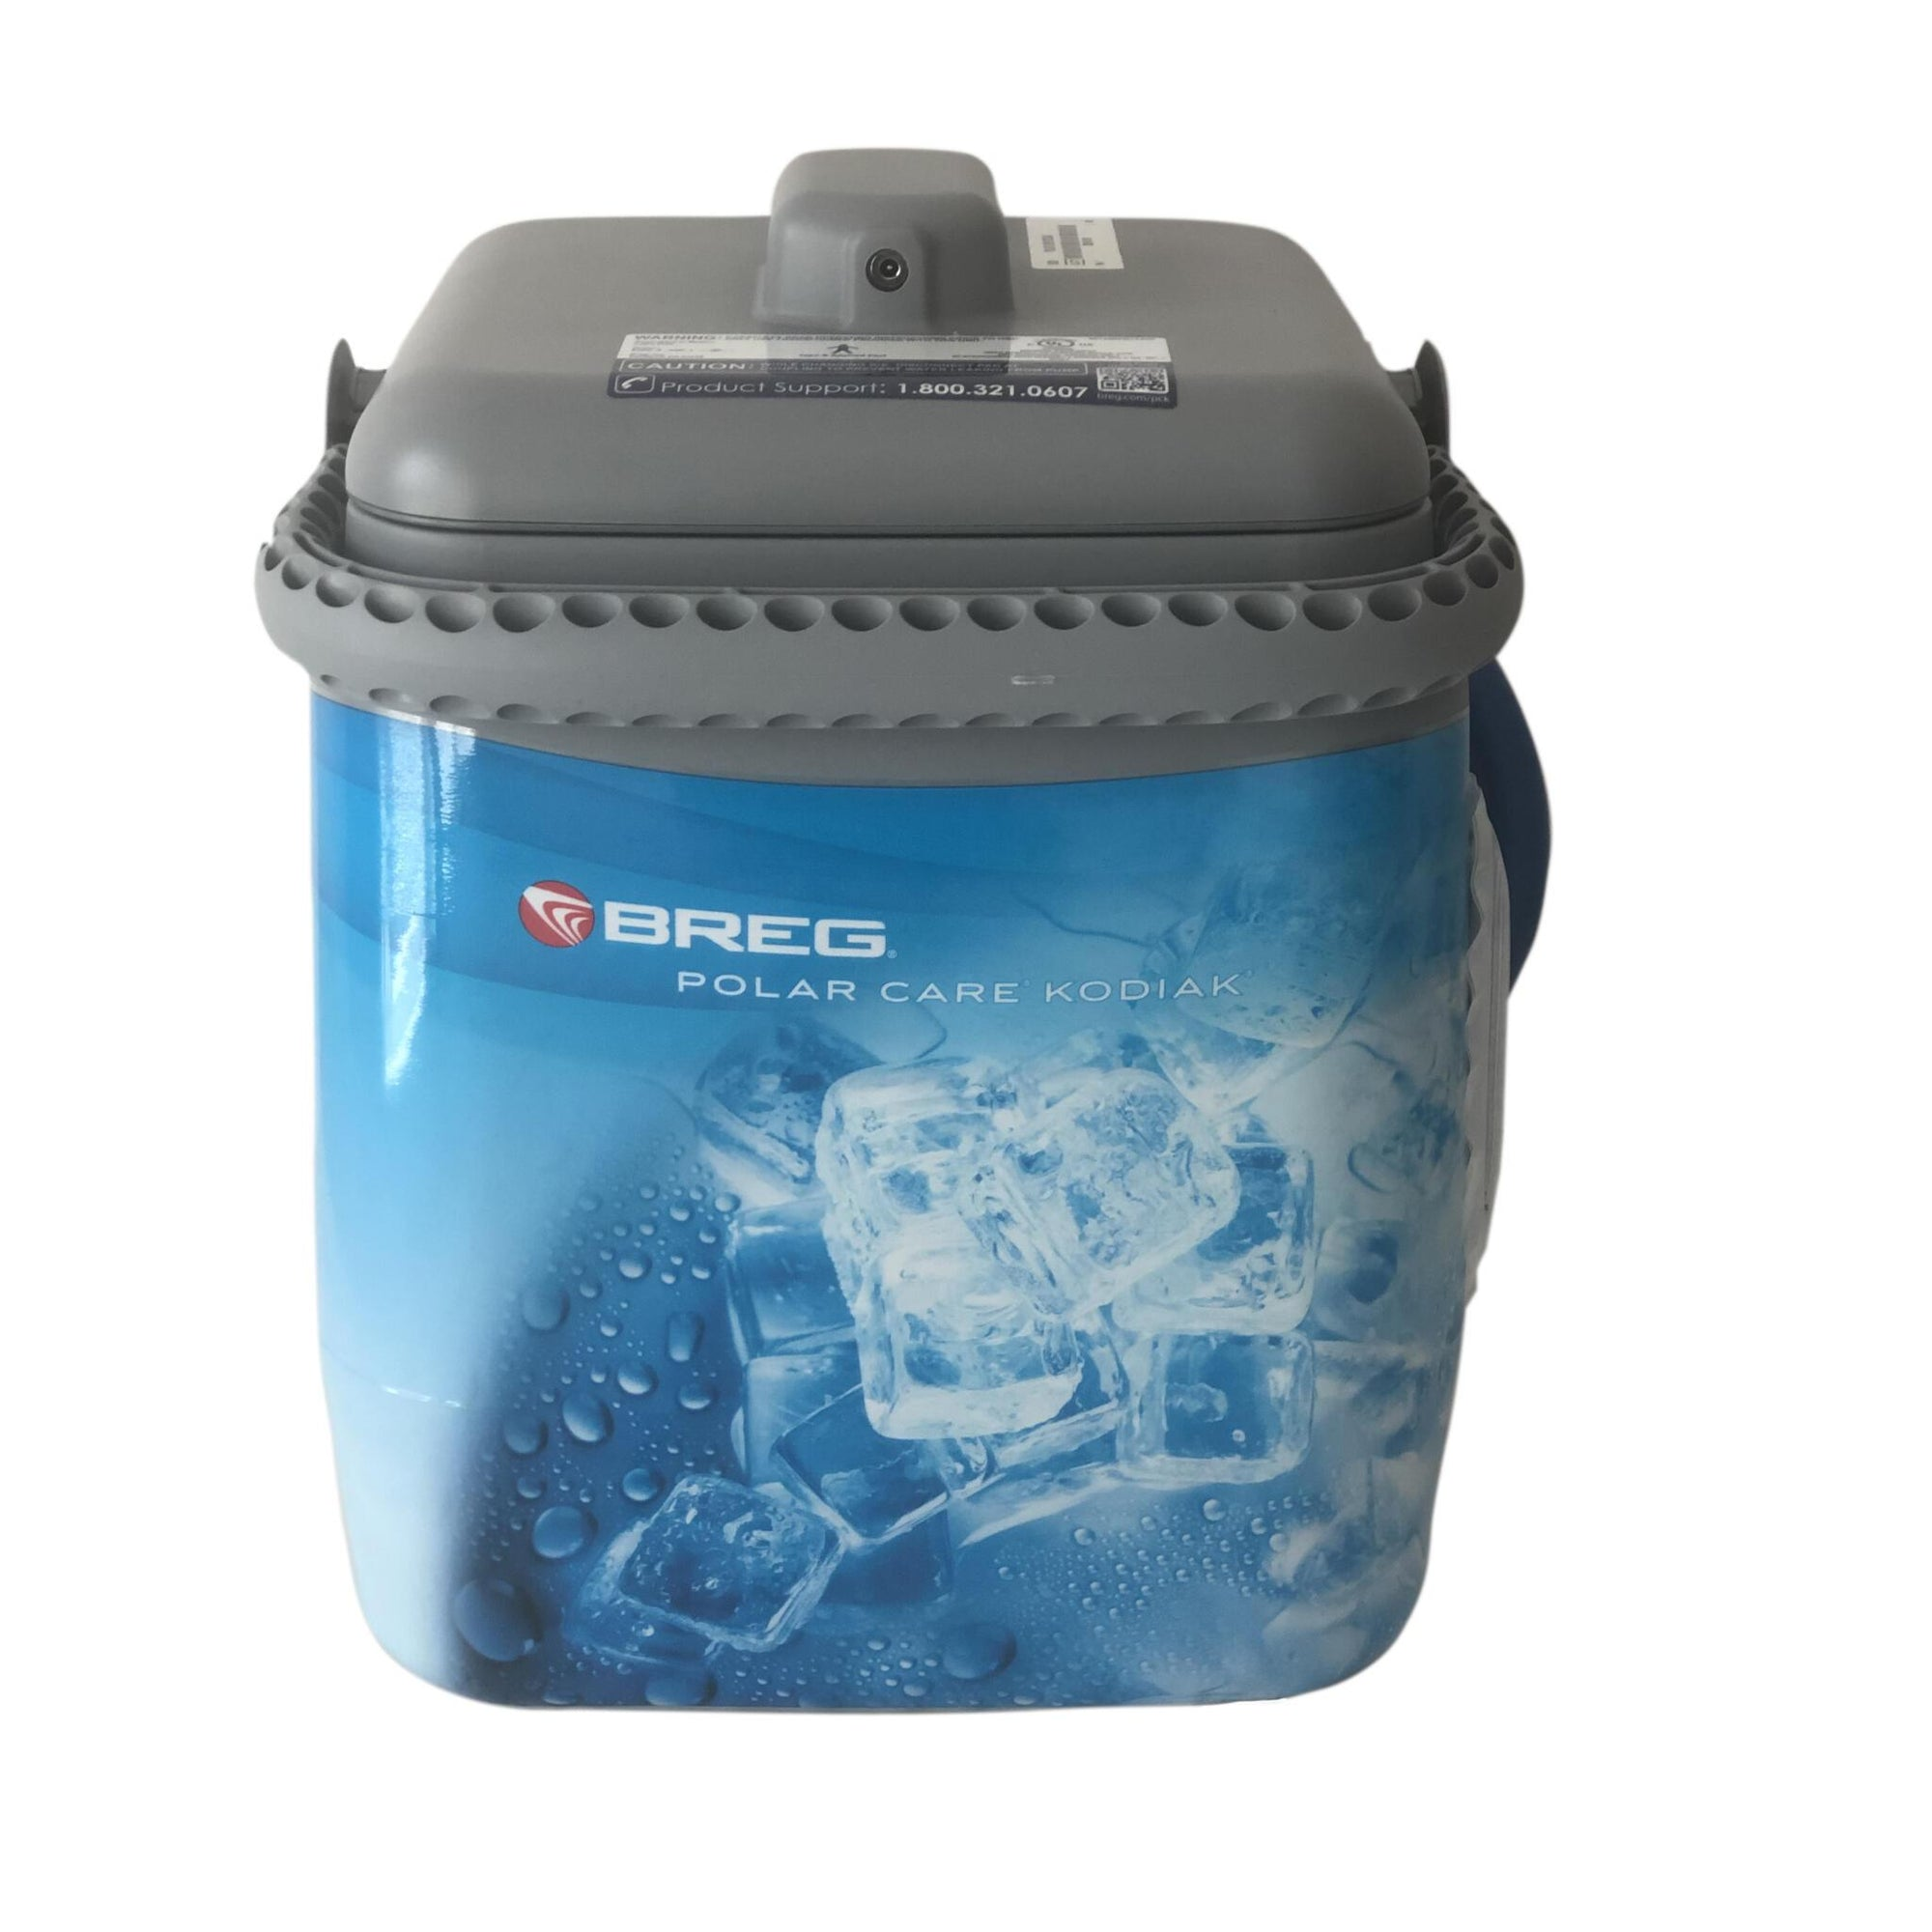 Buy Breg Polar Care Kodiak System from Breg at Ortho Bracing